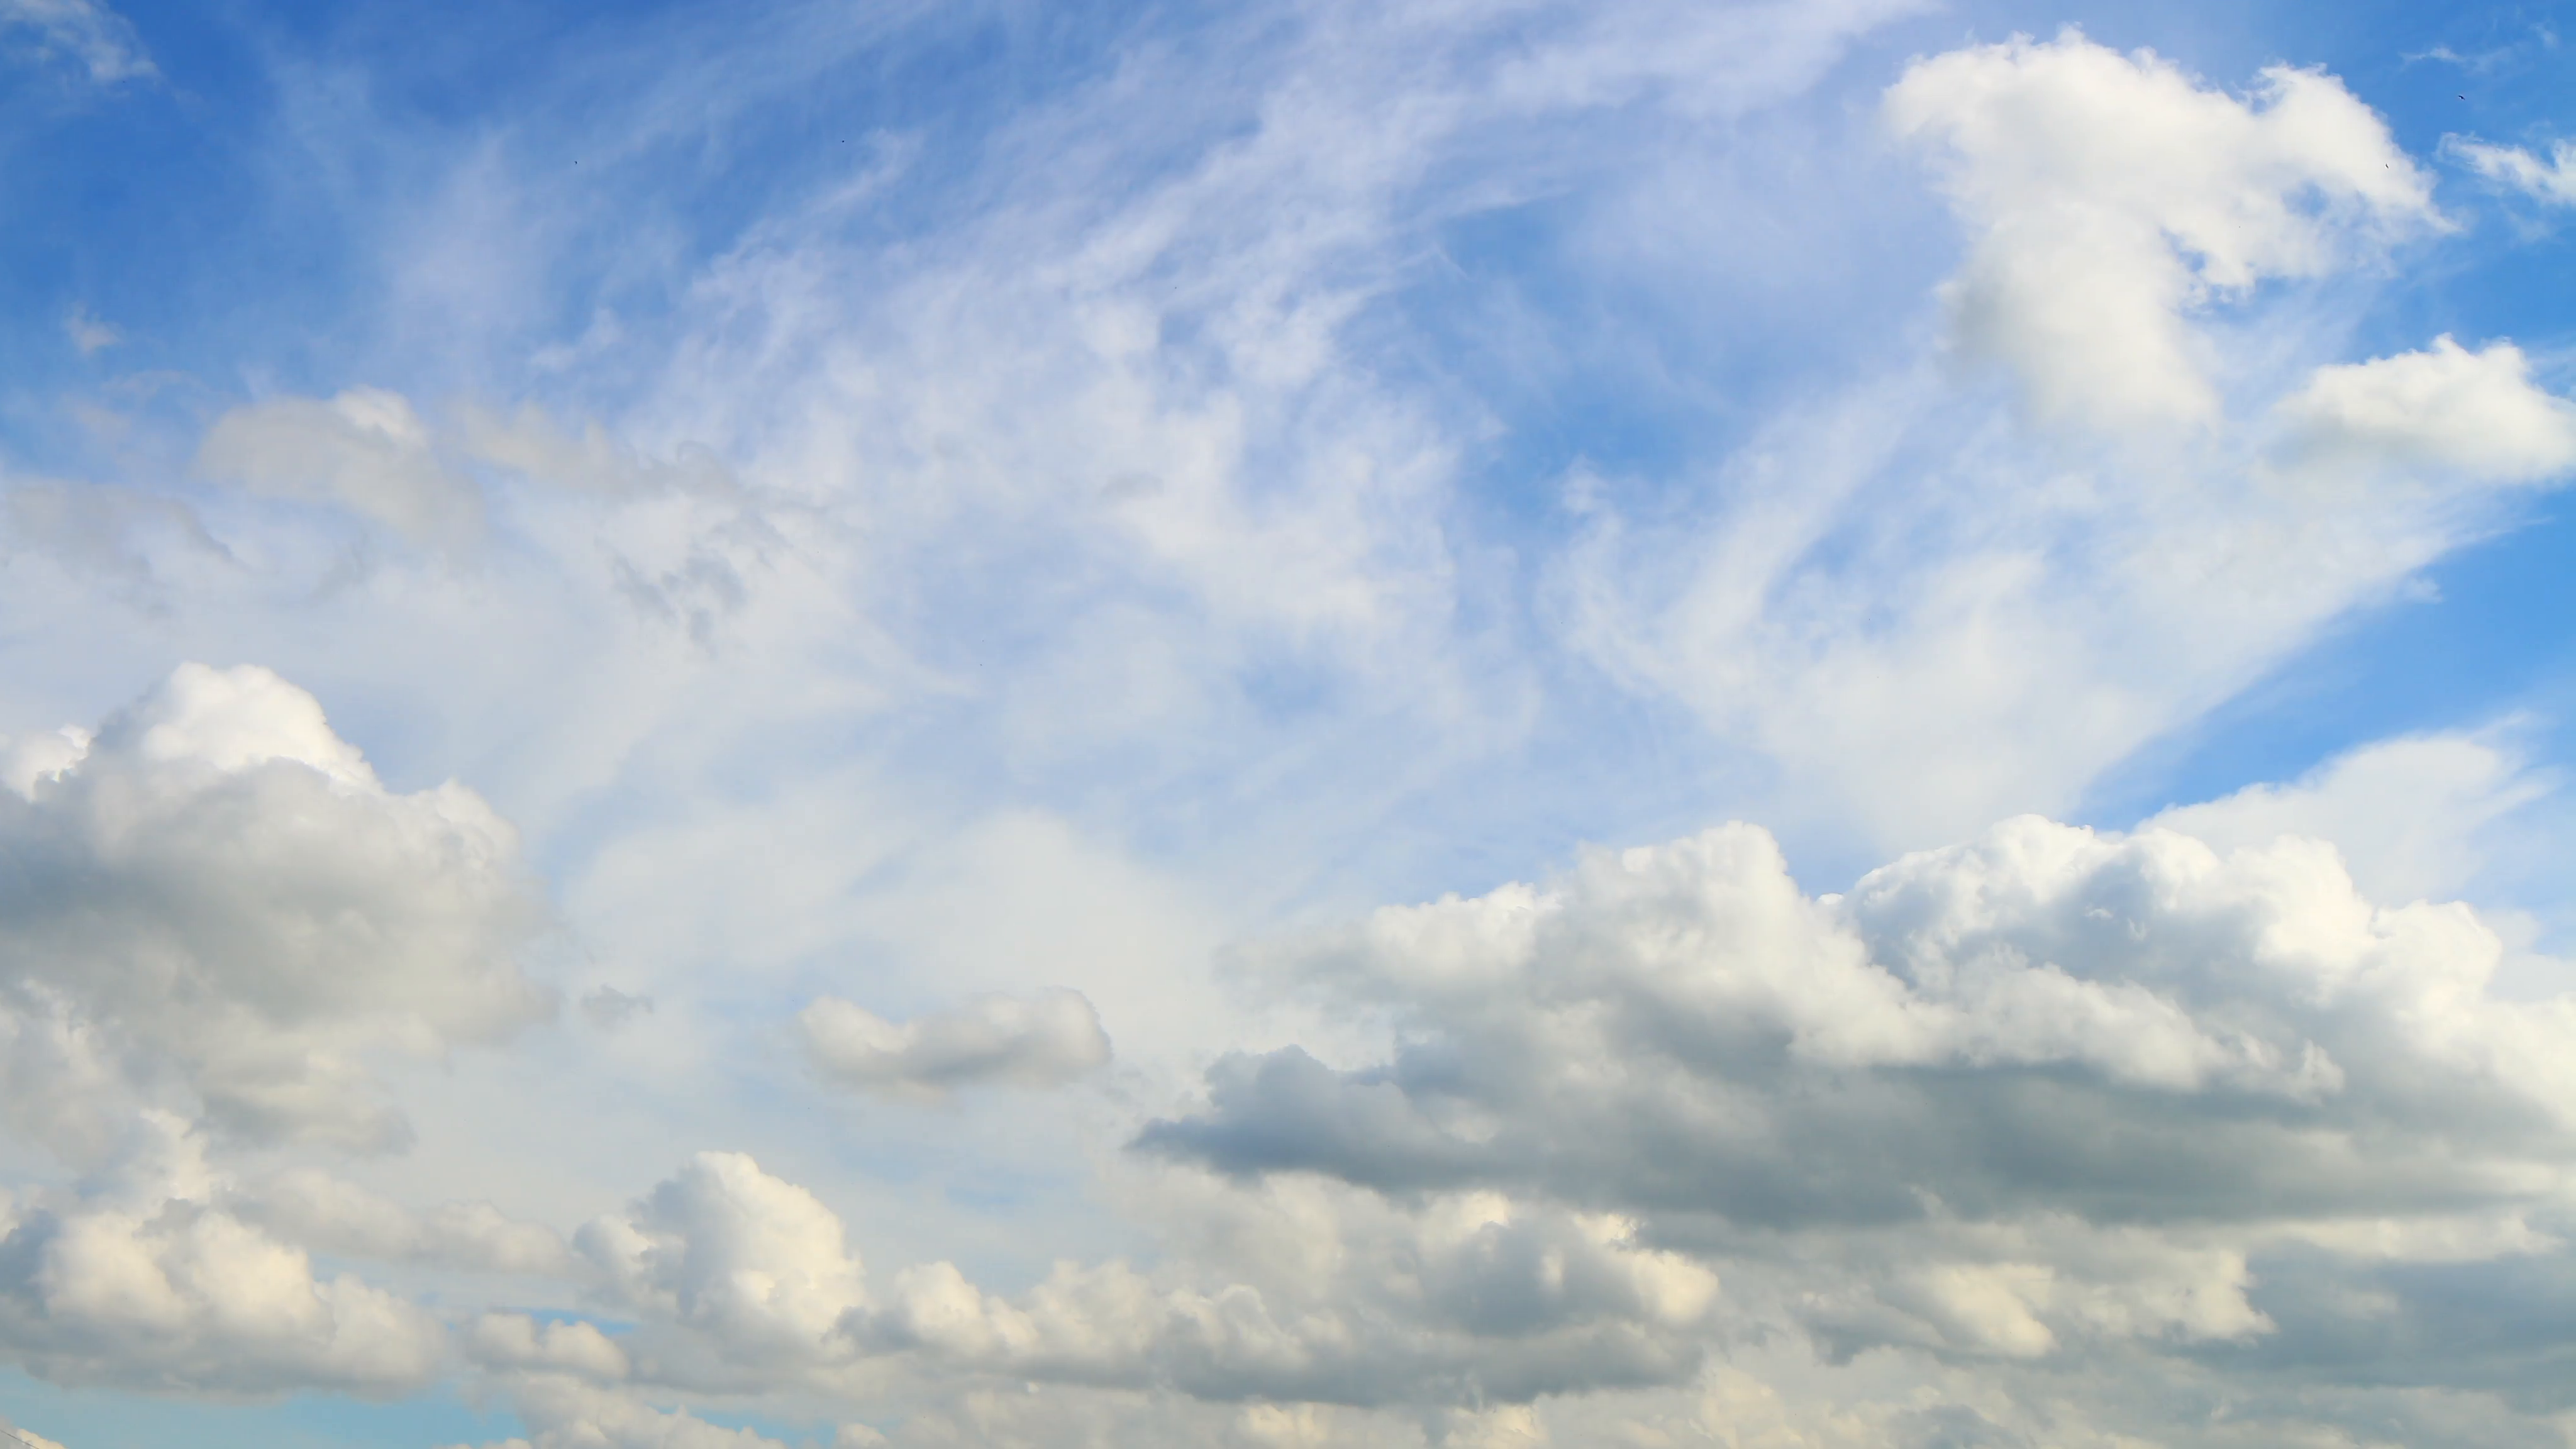 cloudy light sky sunny day sky with white clouds 4k time lapse Stock Video  Footage.